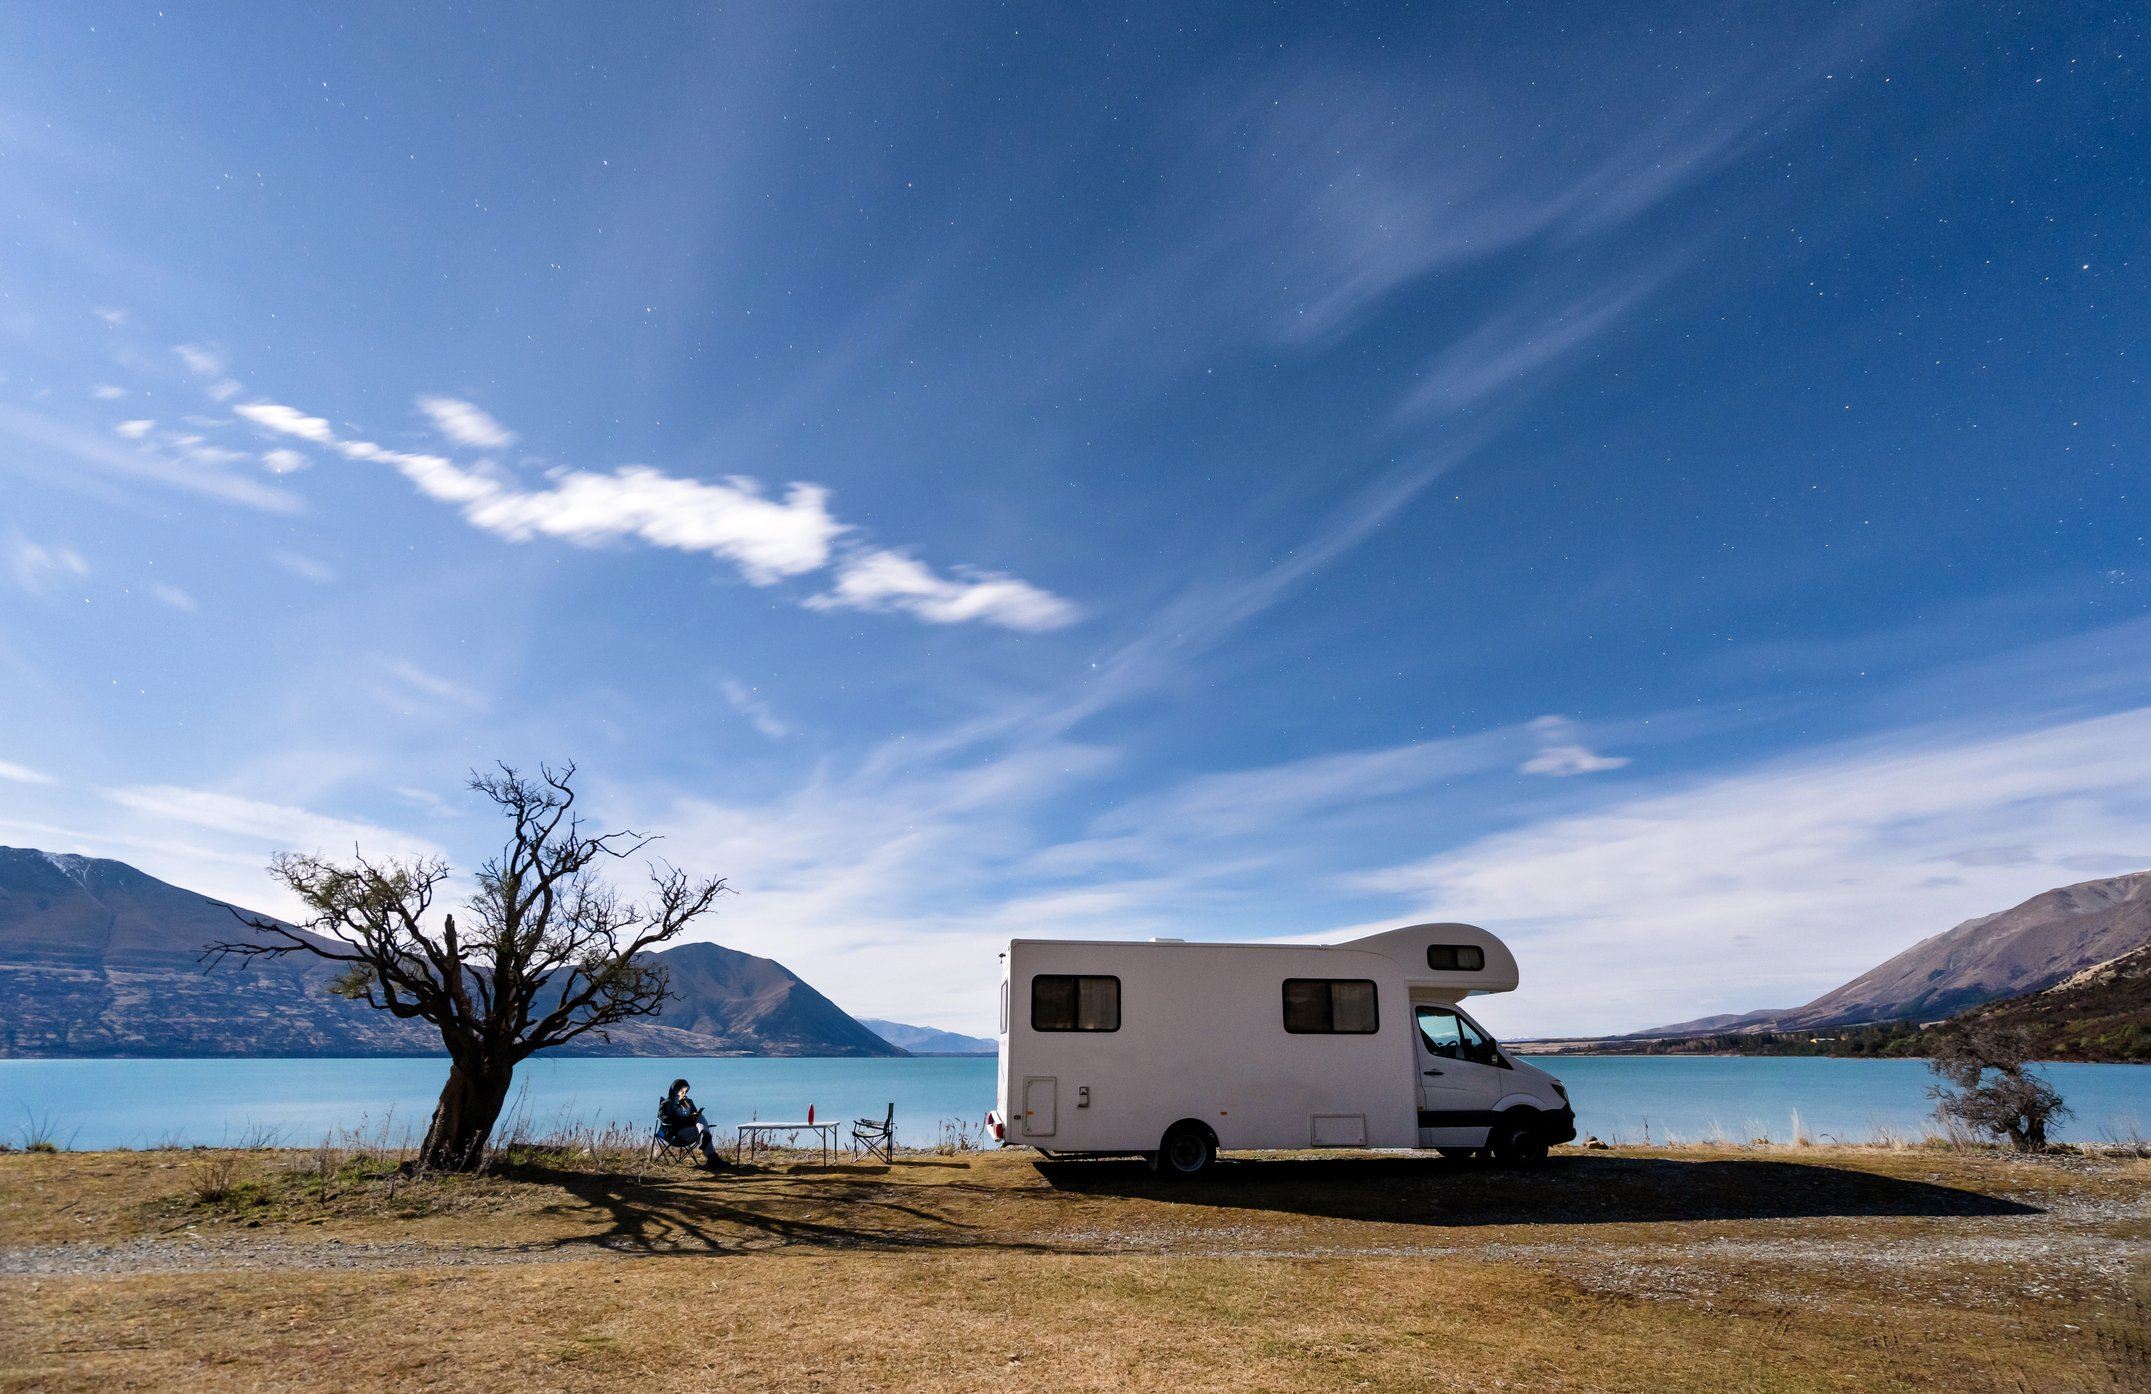 Camping unter Sternen. I Quelle: Getty Images